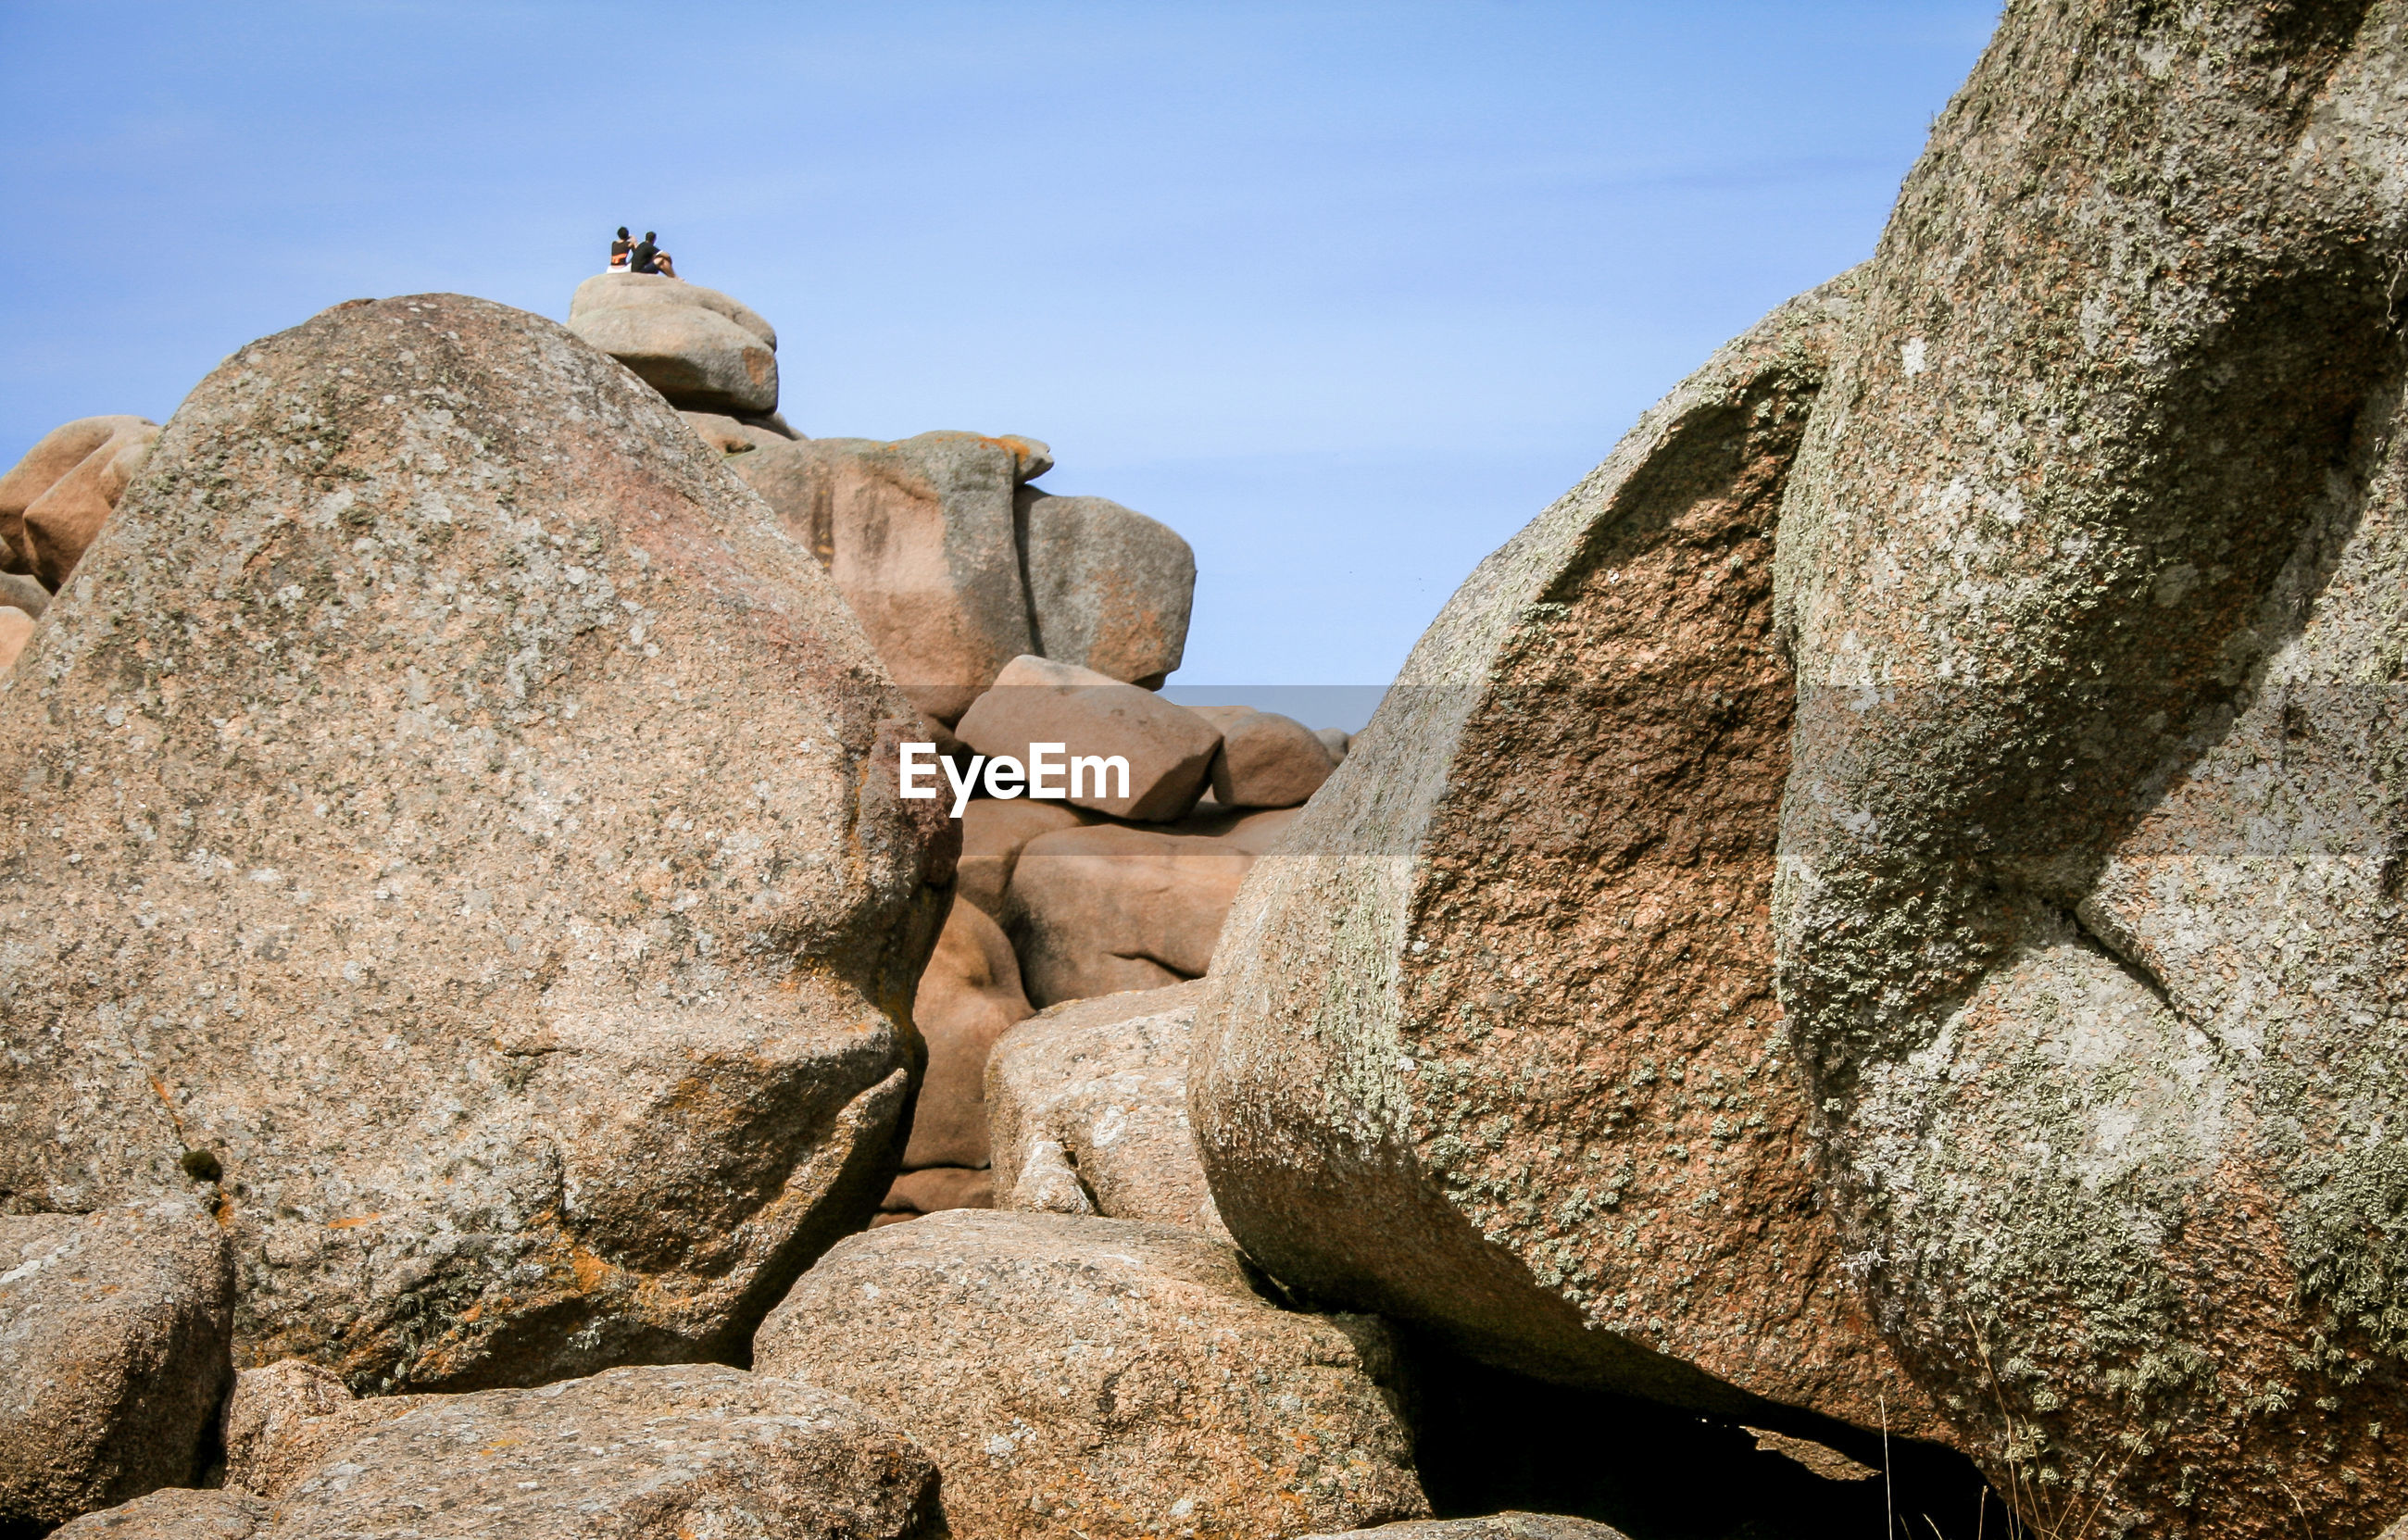 LOW ANGLE VIEW OF STATUE AGAINST ROCKS